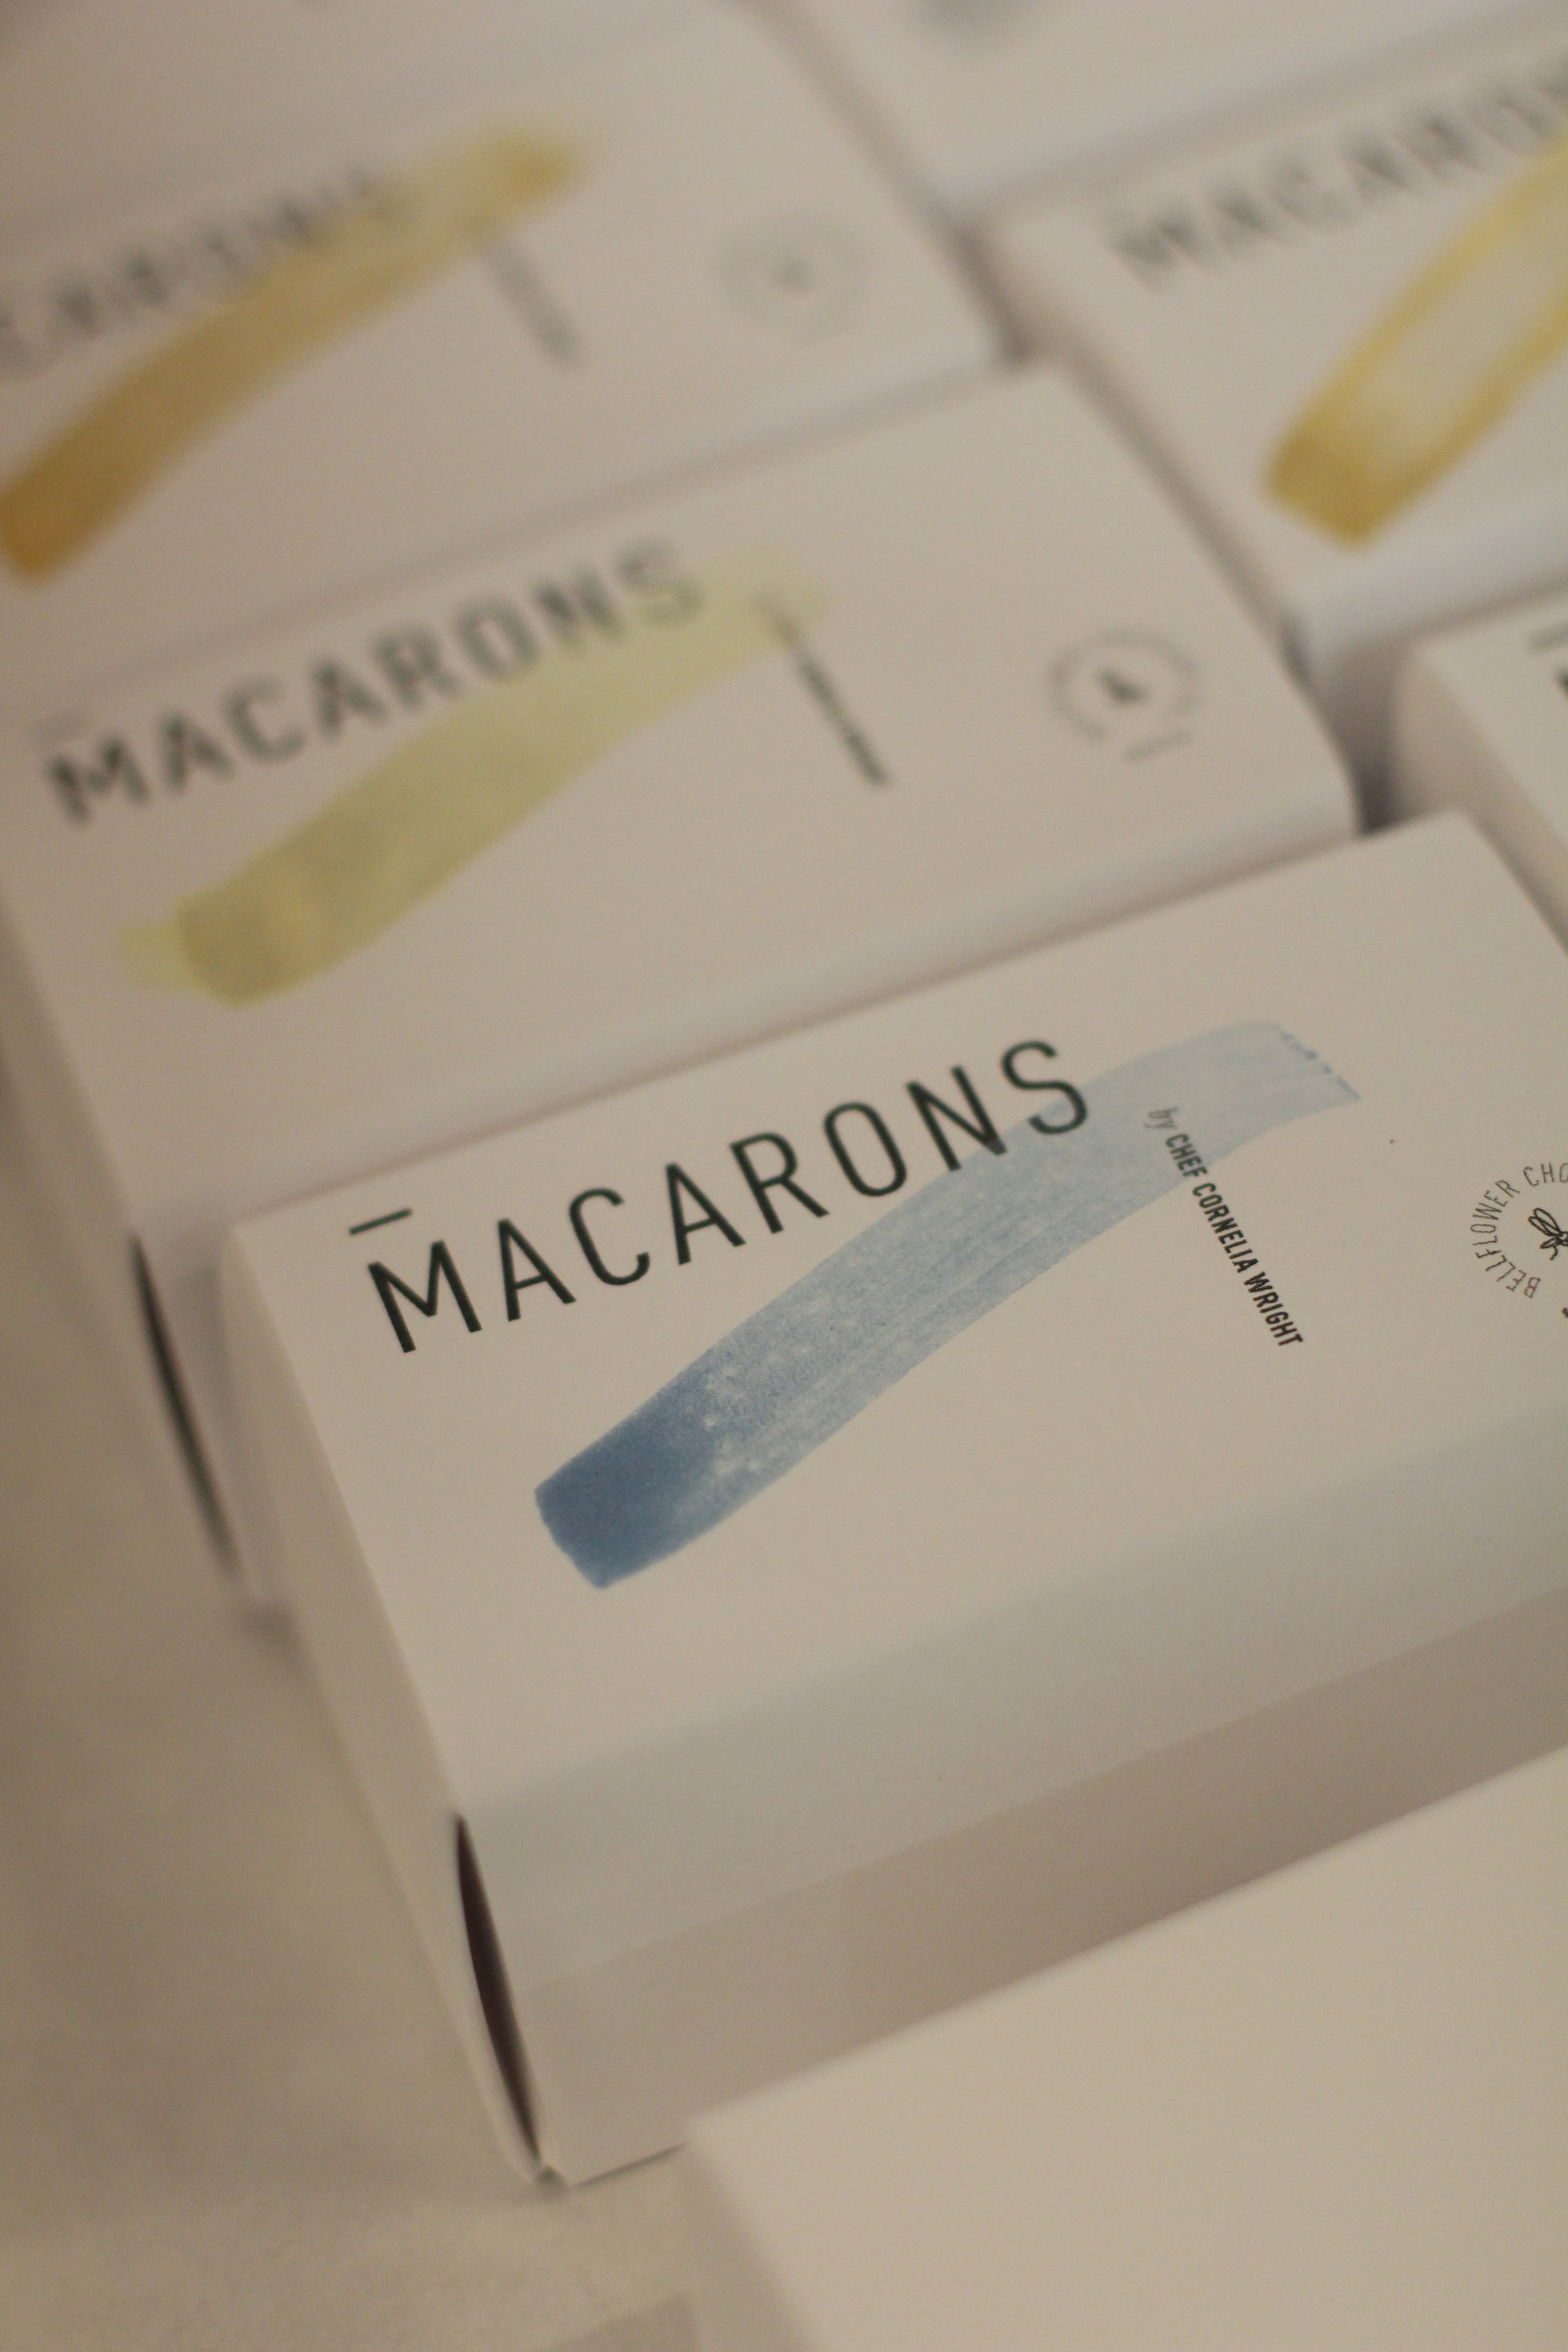 Final macaron packaging, at least for this MVP batch. At Omfk., May 11, 2018.